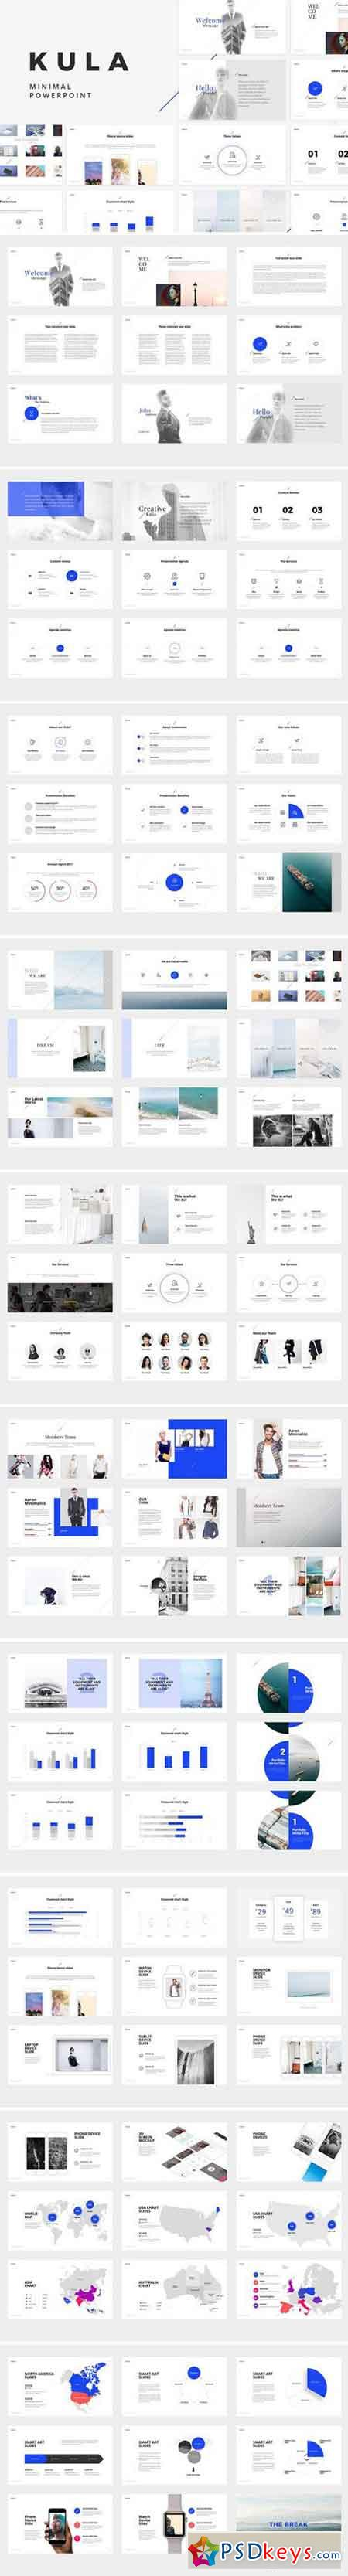 ku powerpoint template image collections - powerpoint template and, Powerpoint templates